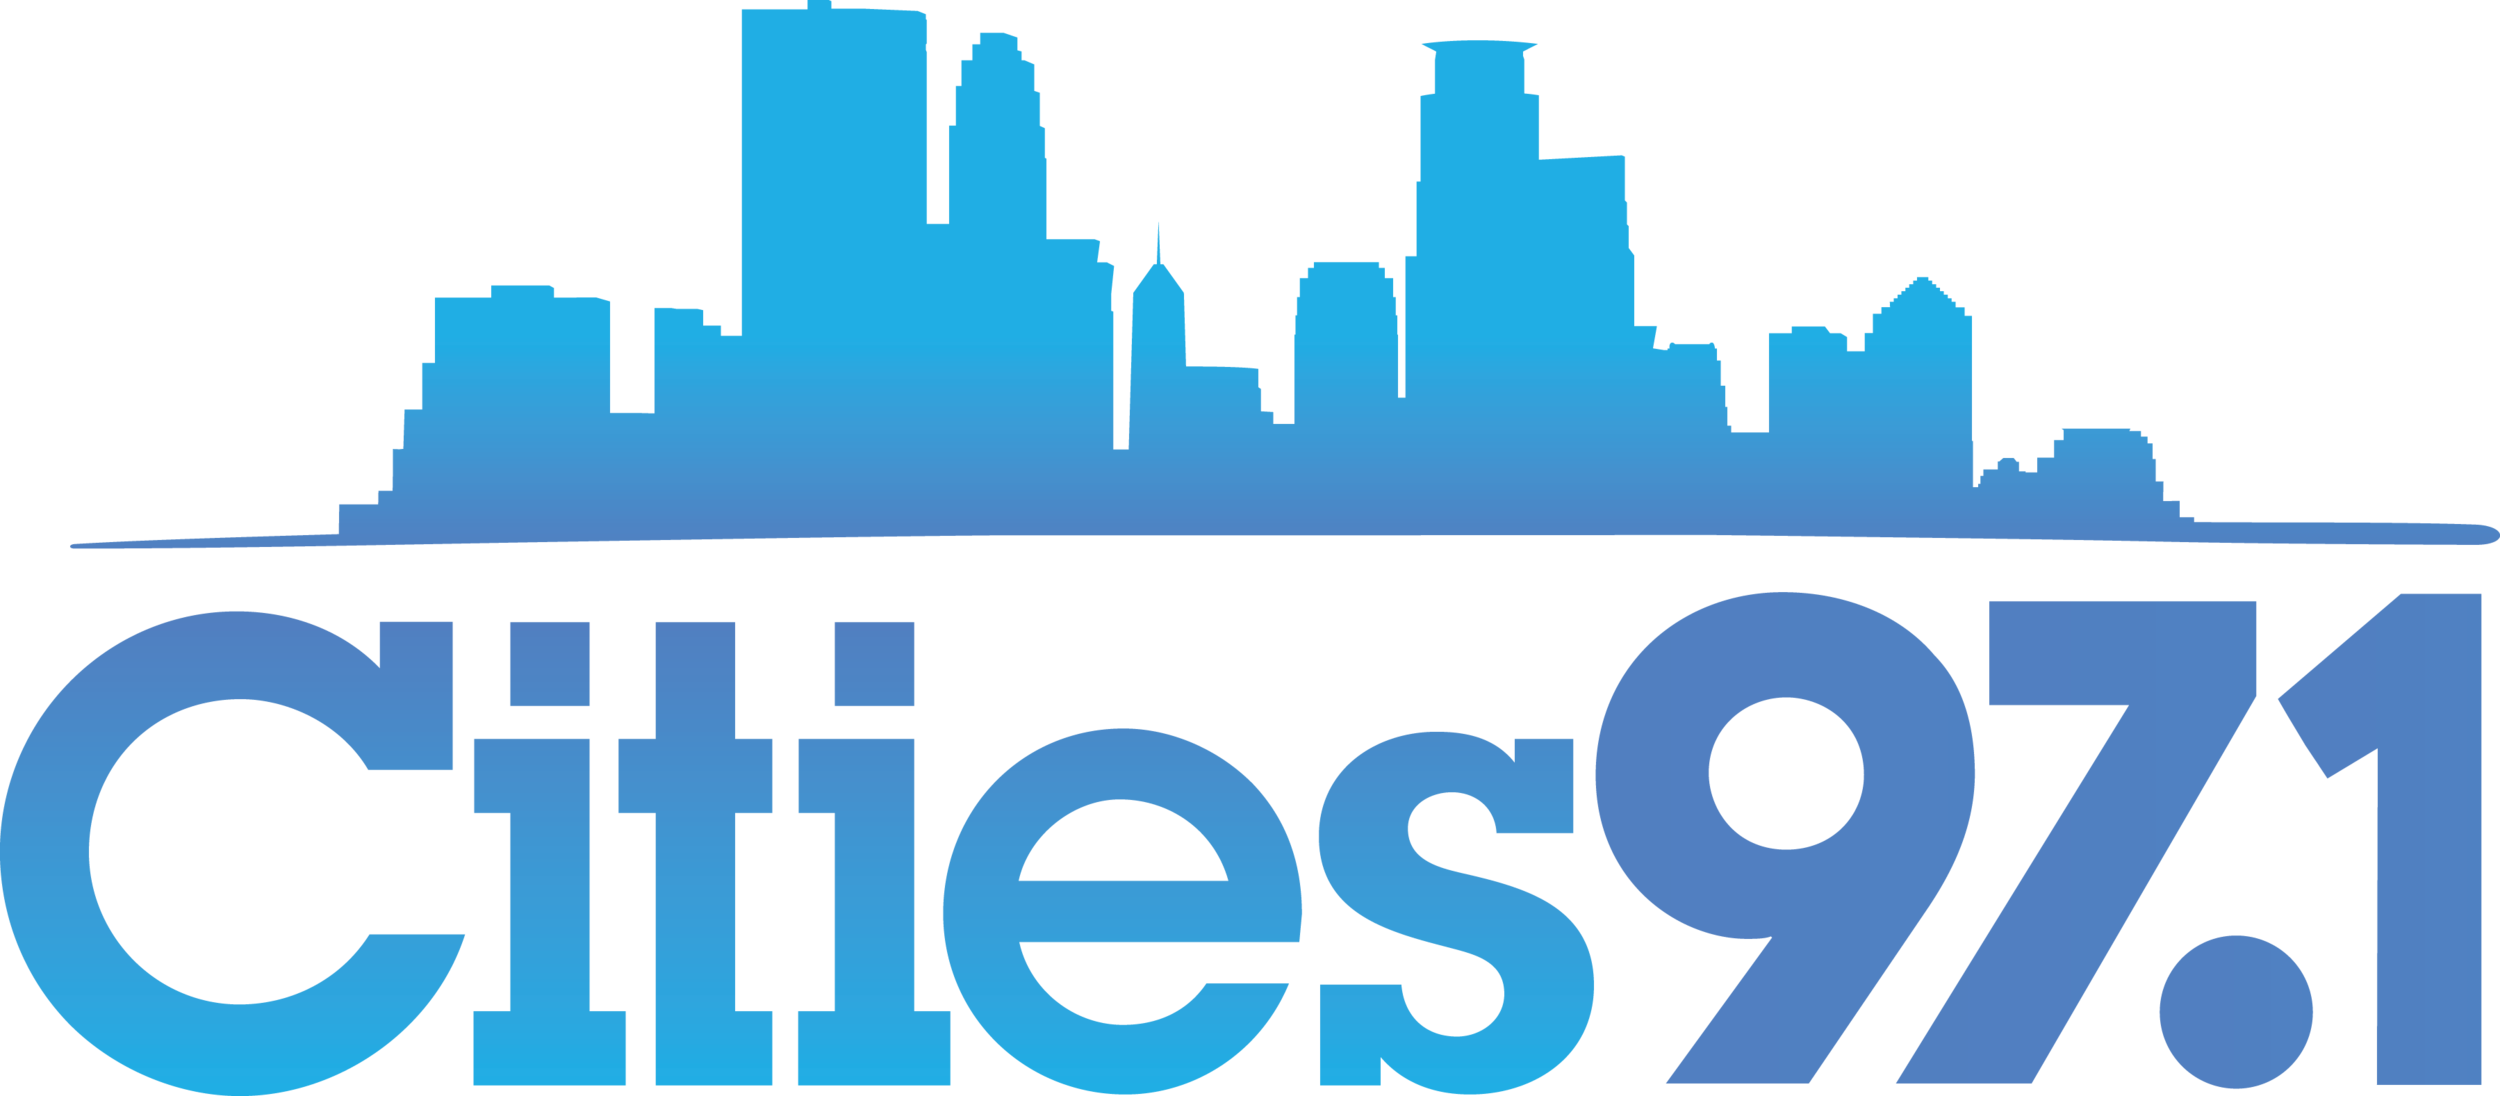 Cities_97_1_Logo_Color.png